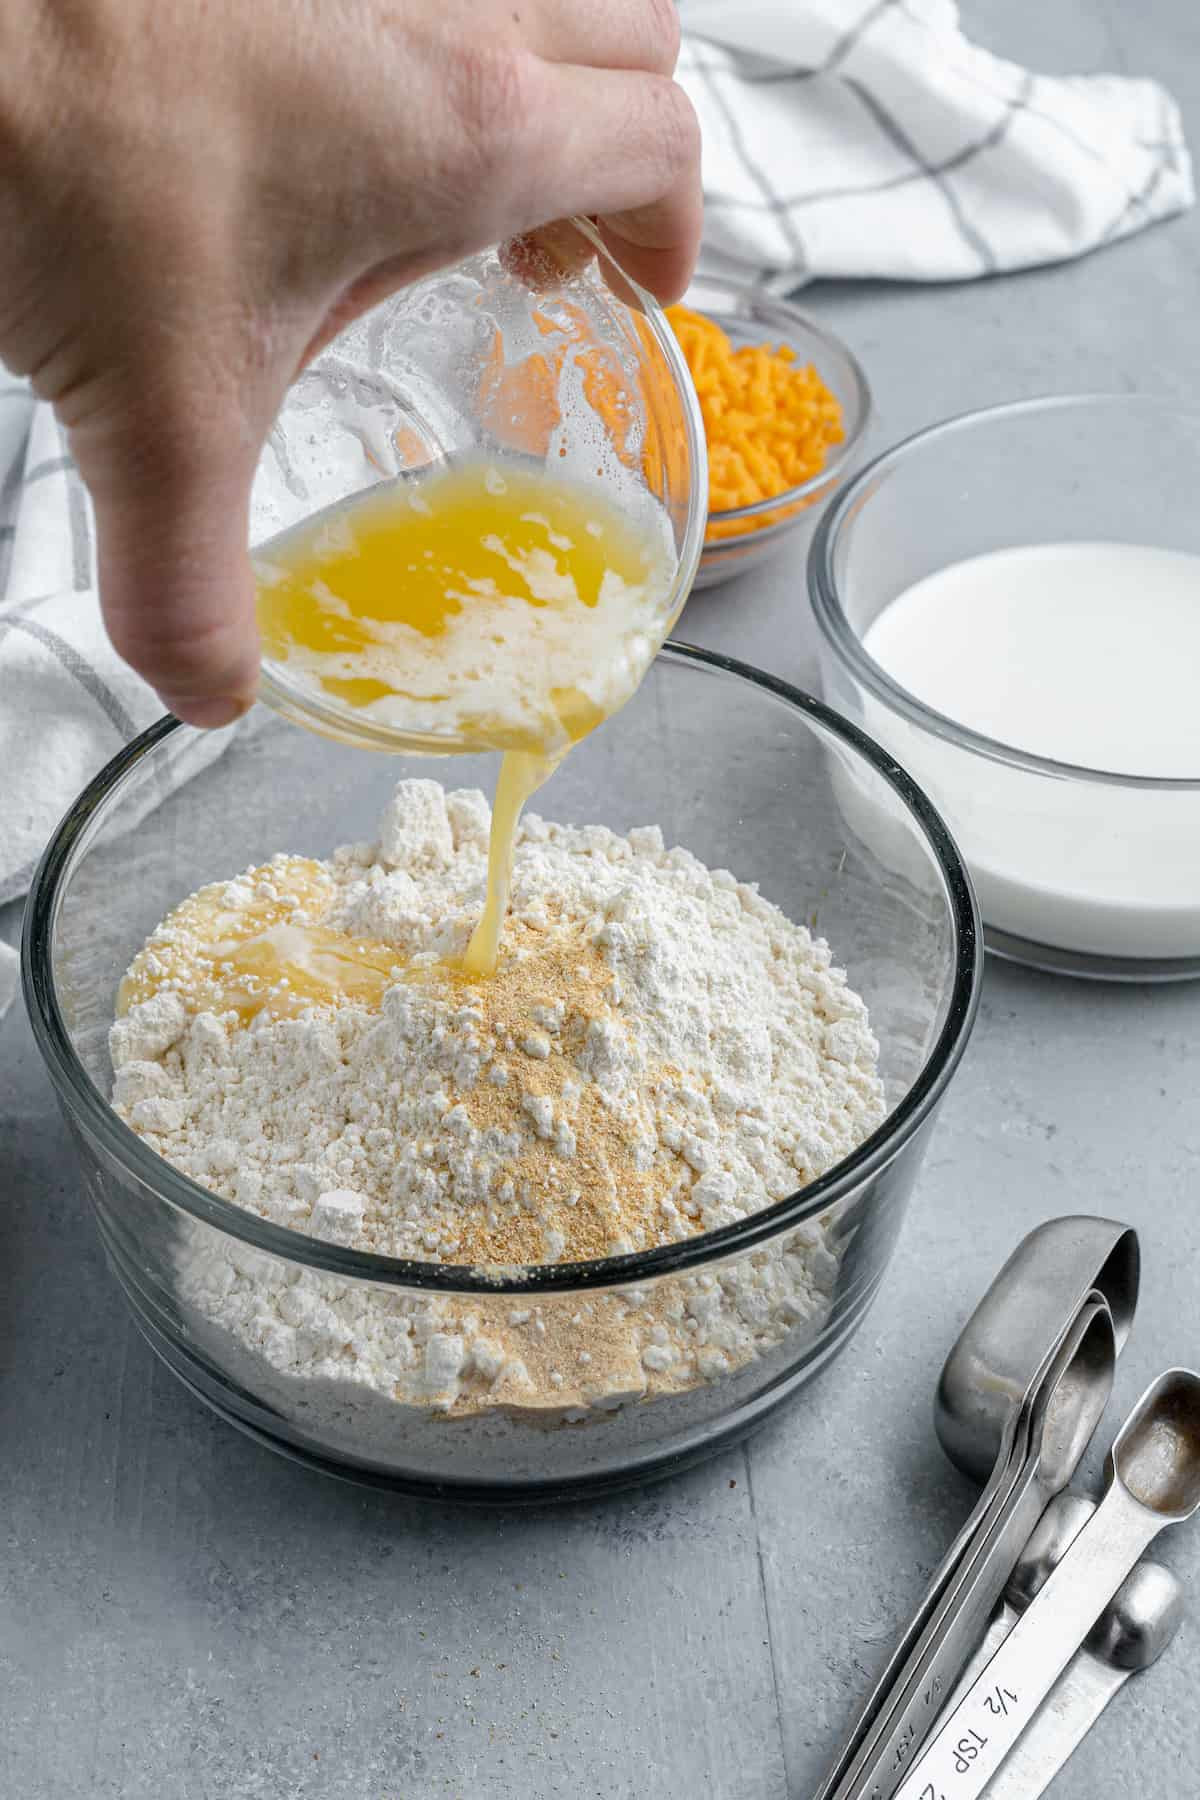 Melted Butter Being Poured Over a Bowl of Bisquick Mix